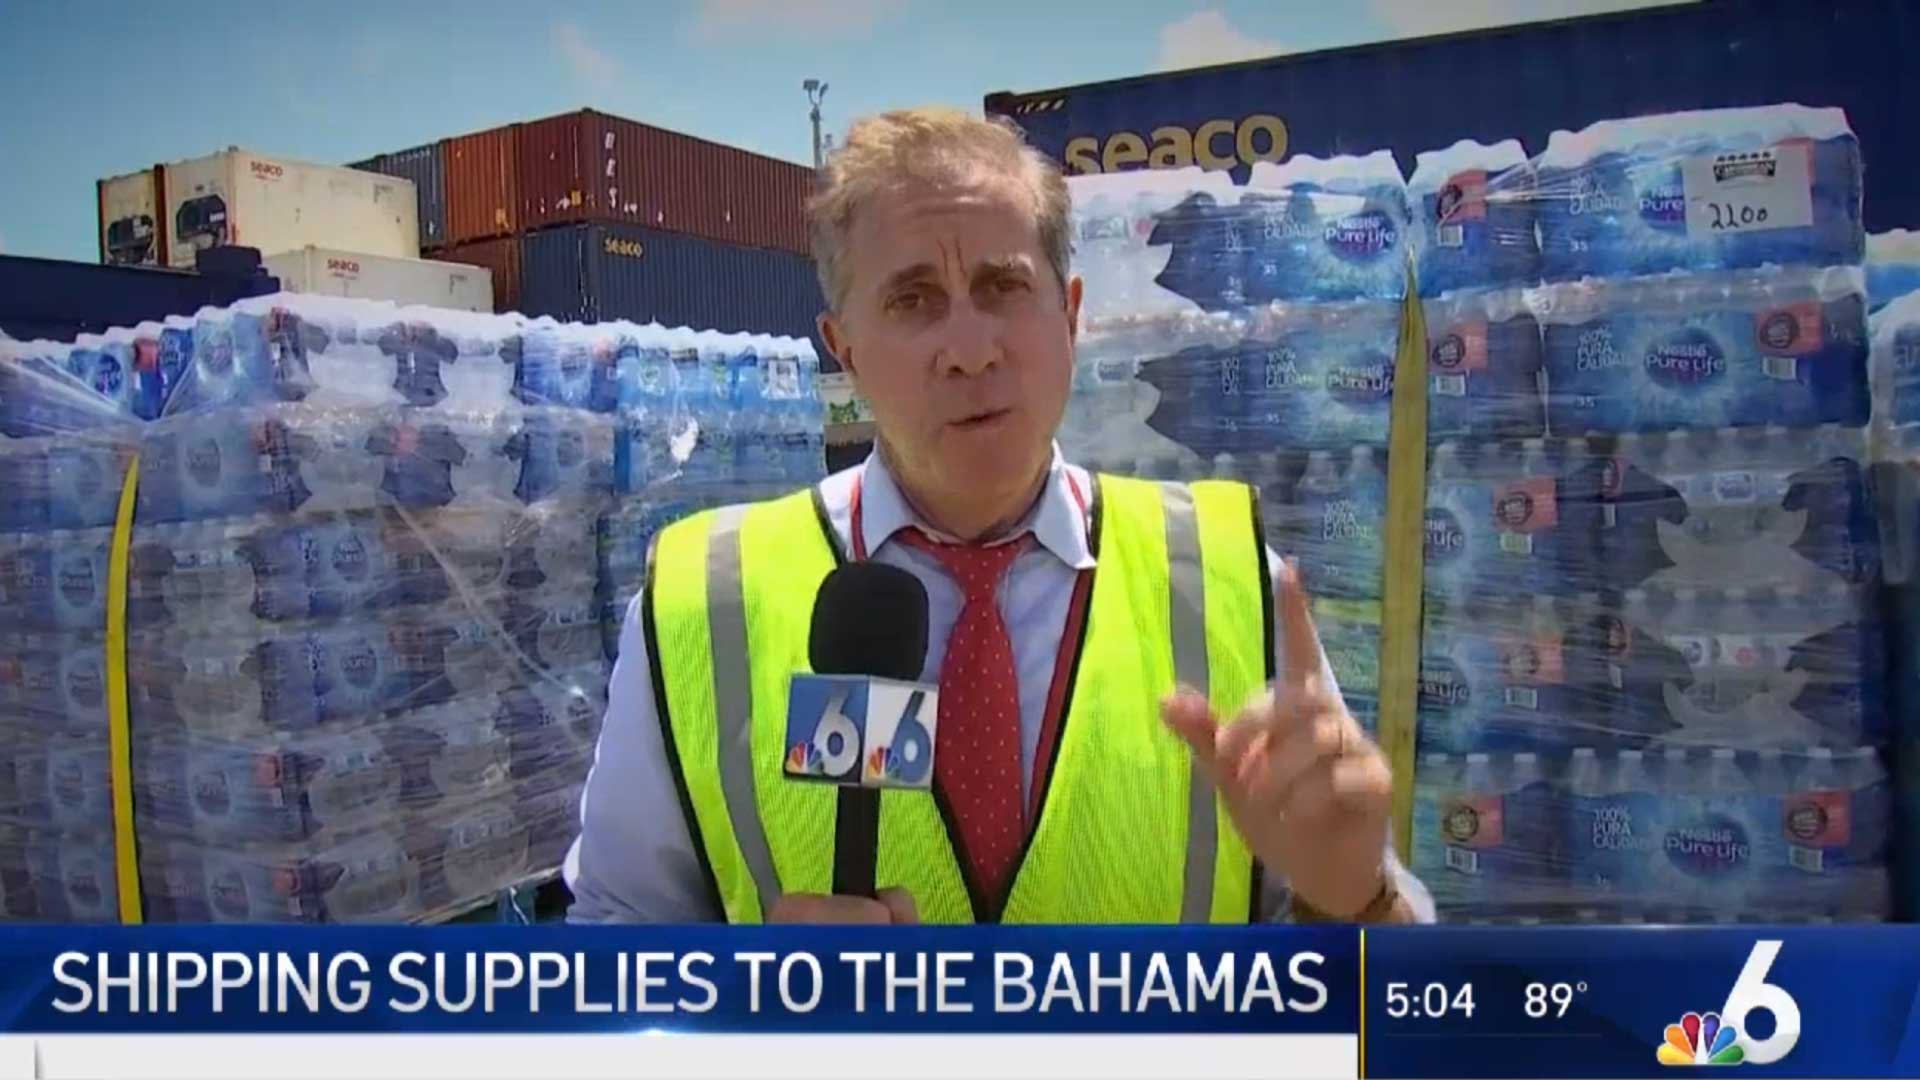 screenshot of news channel video on shipping supplies